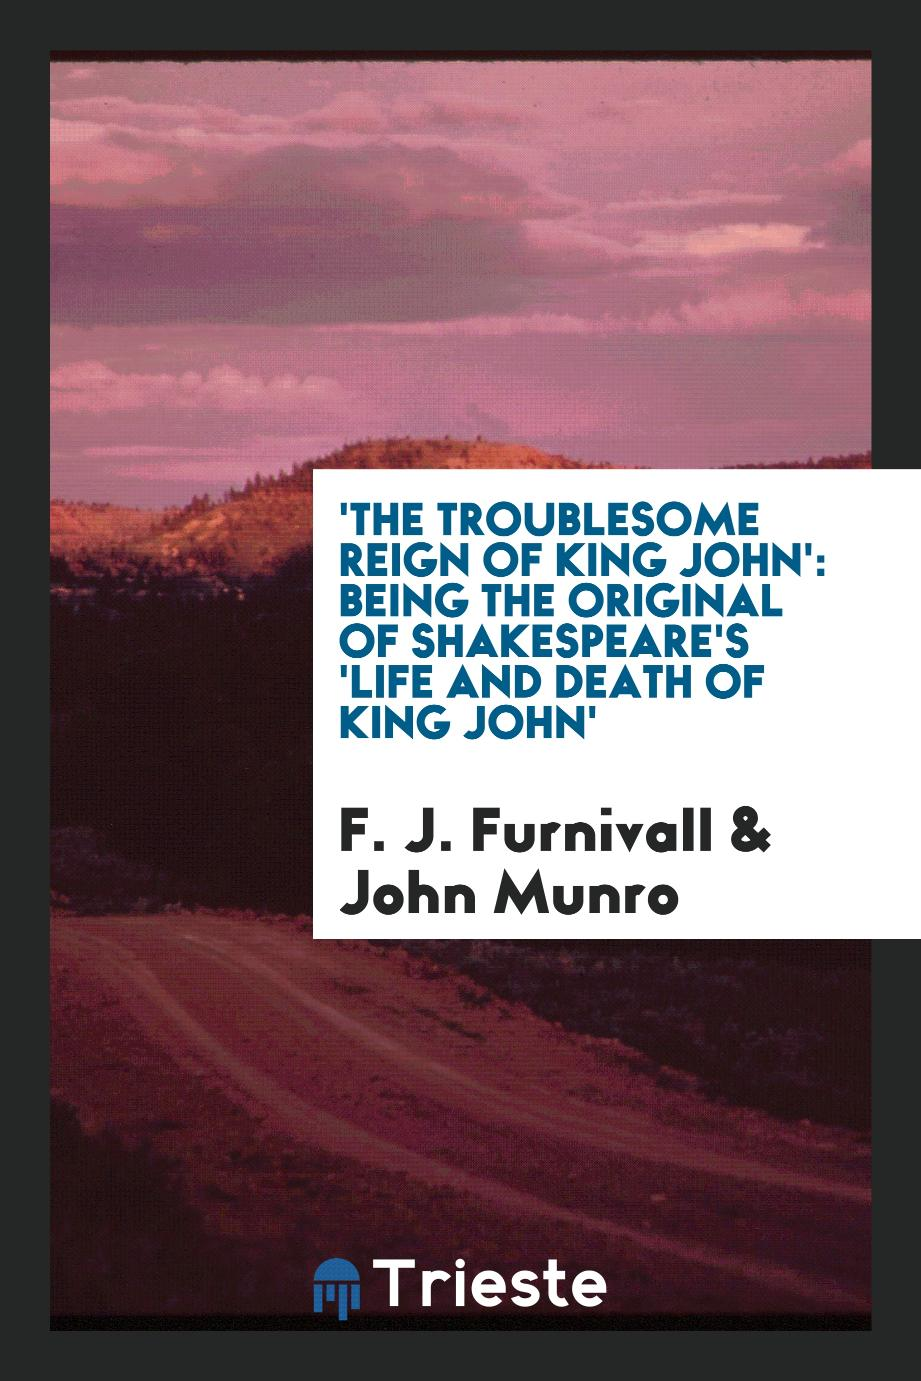 'The Troublesome reign of King John': being the original of Shakespeare's 'Life and death of King John'